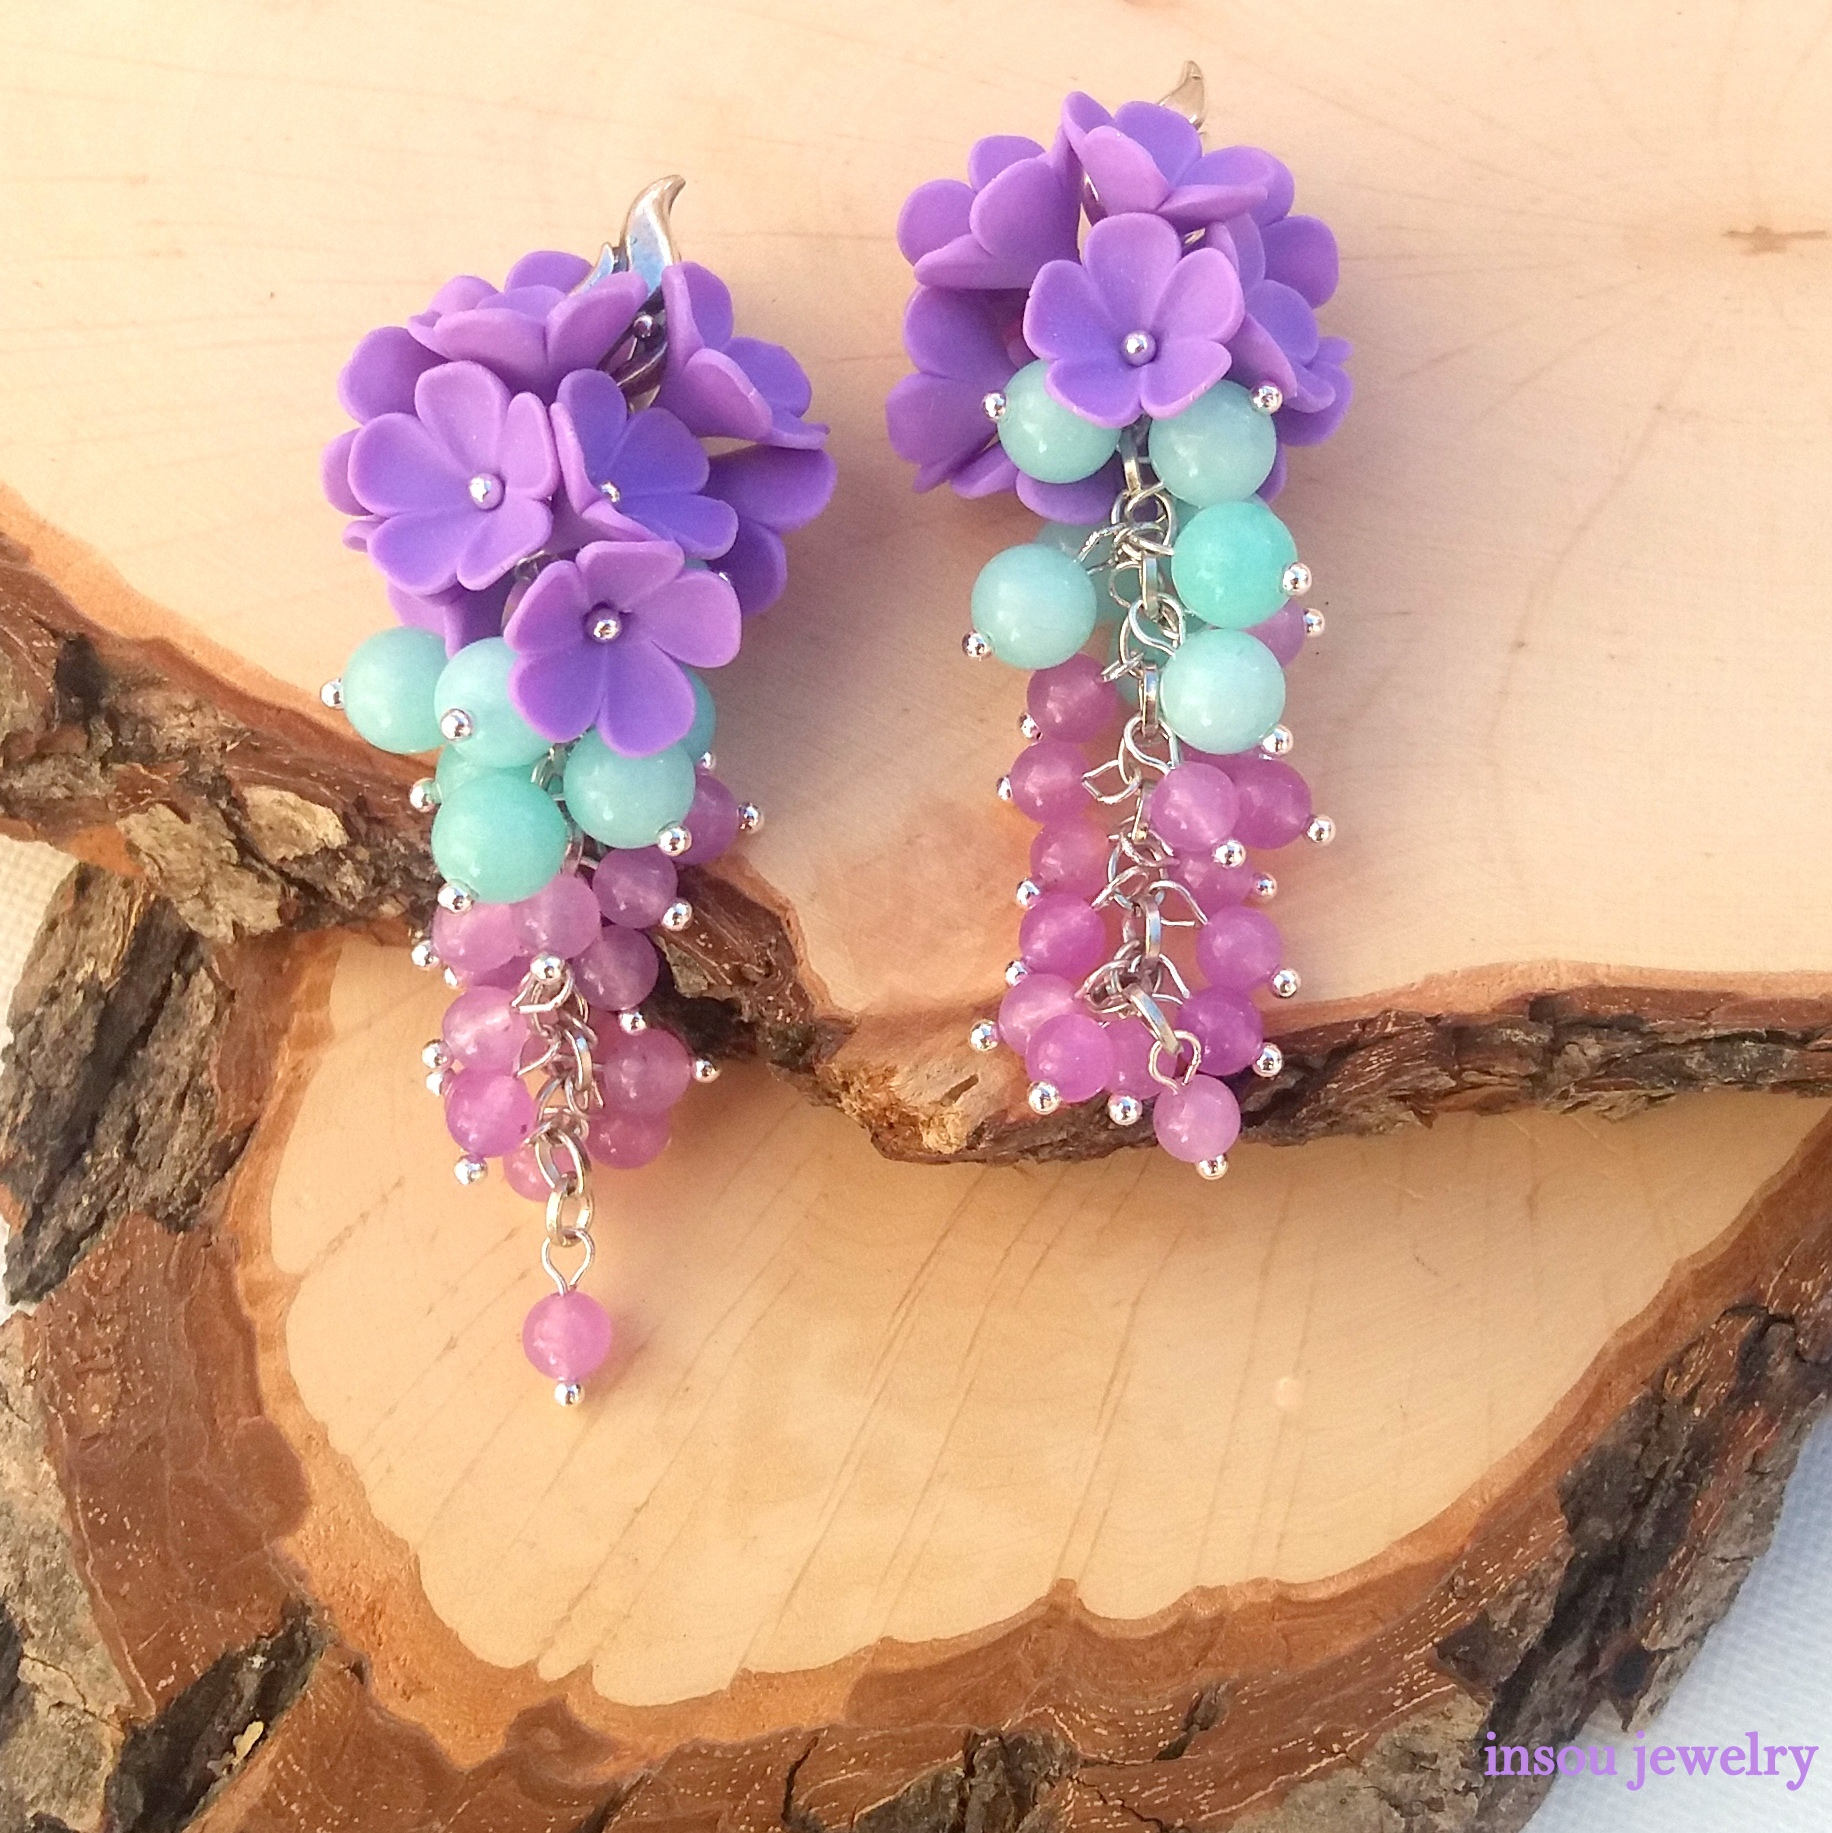 green ooak white reserved marella inspirations for fairy products collections original flower purple earrings garden